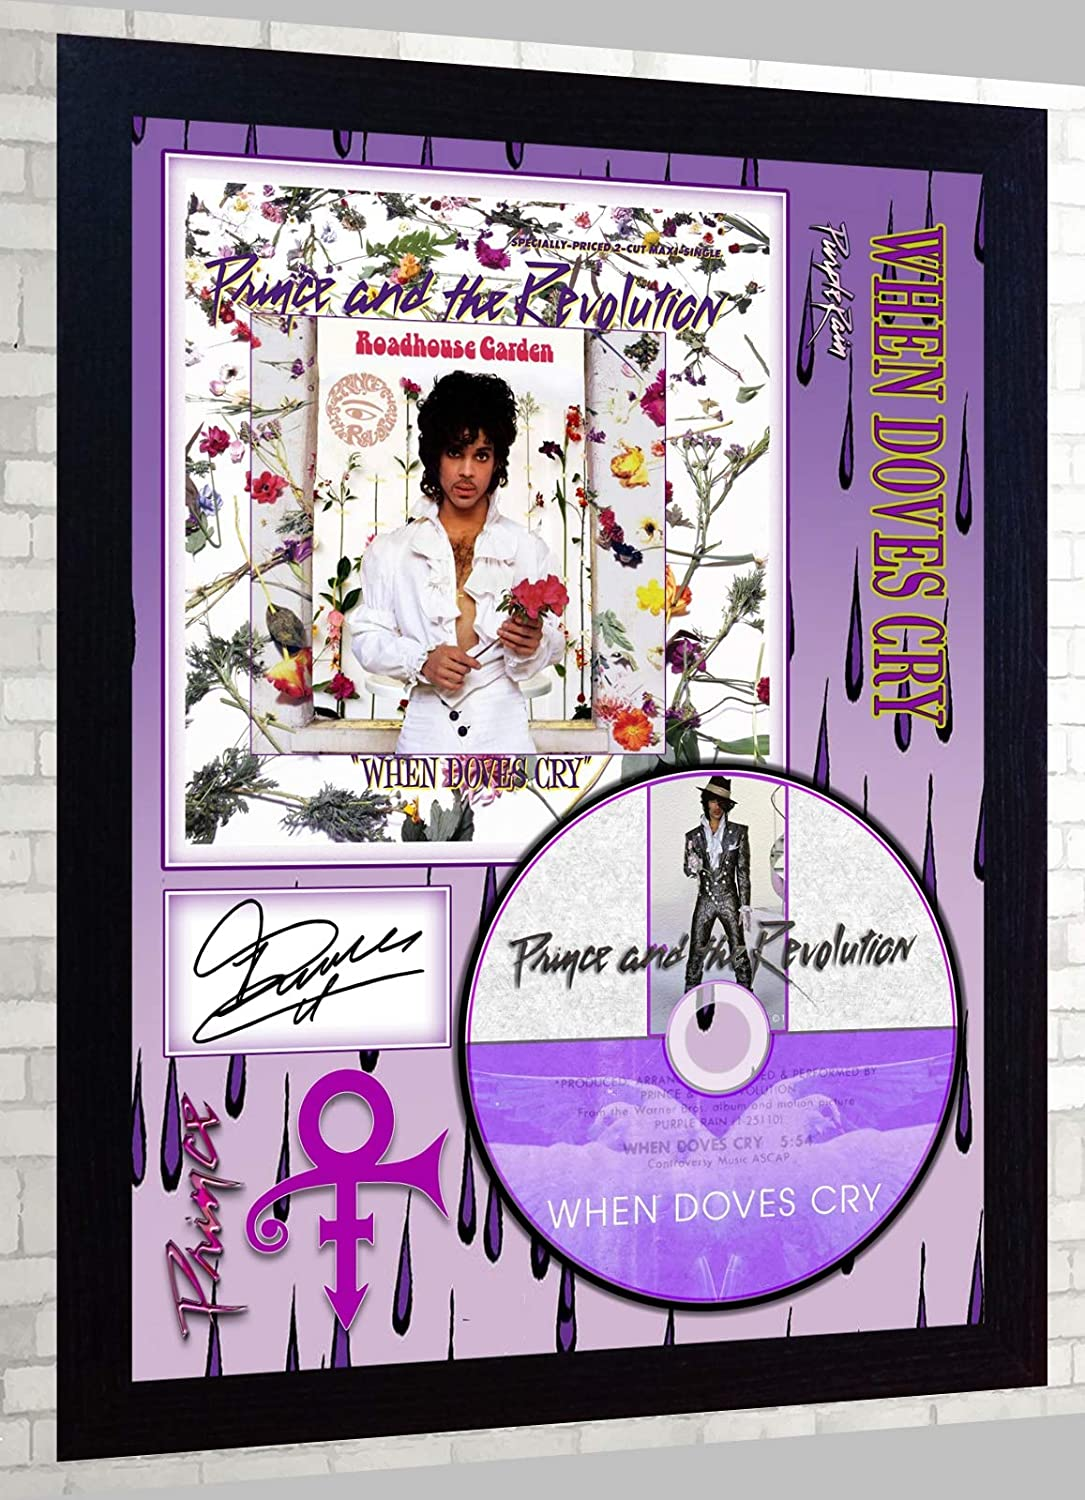 SGH SERVICES Prince Sign/ée encadr/ée Photo Poster dAcheminer CD Disc Lorsque colombes Cry 17/ Jours Purple Rain